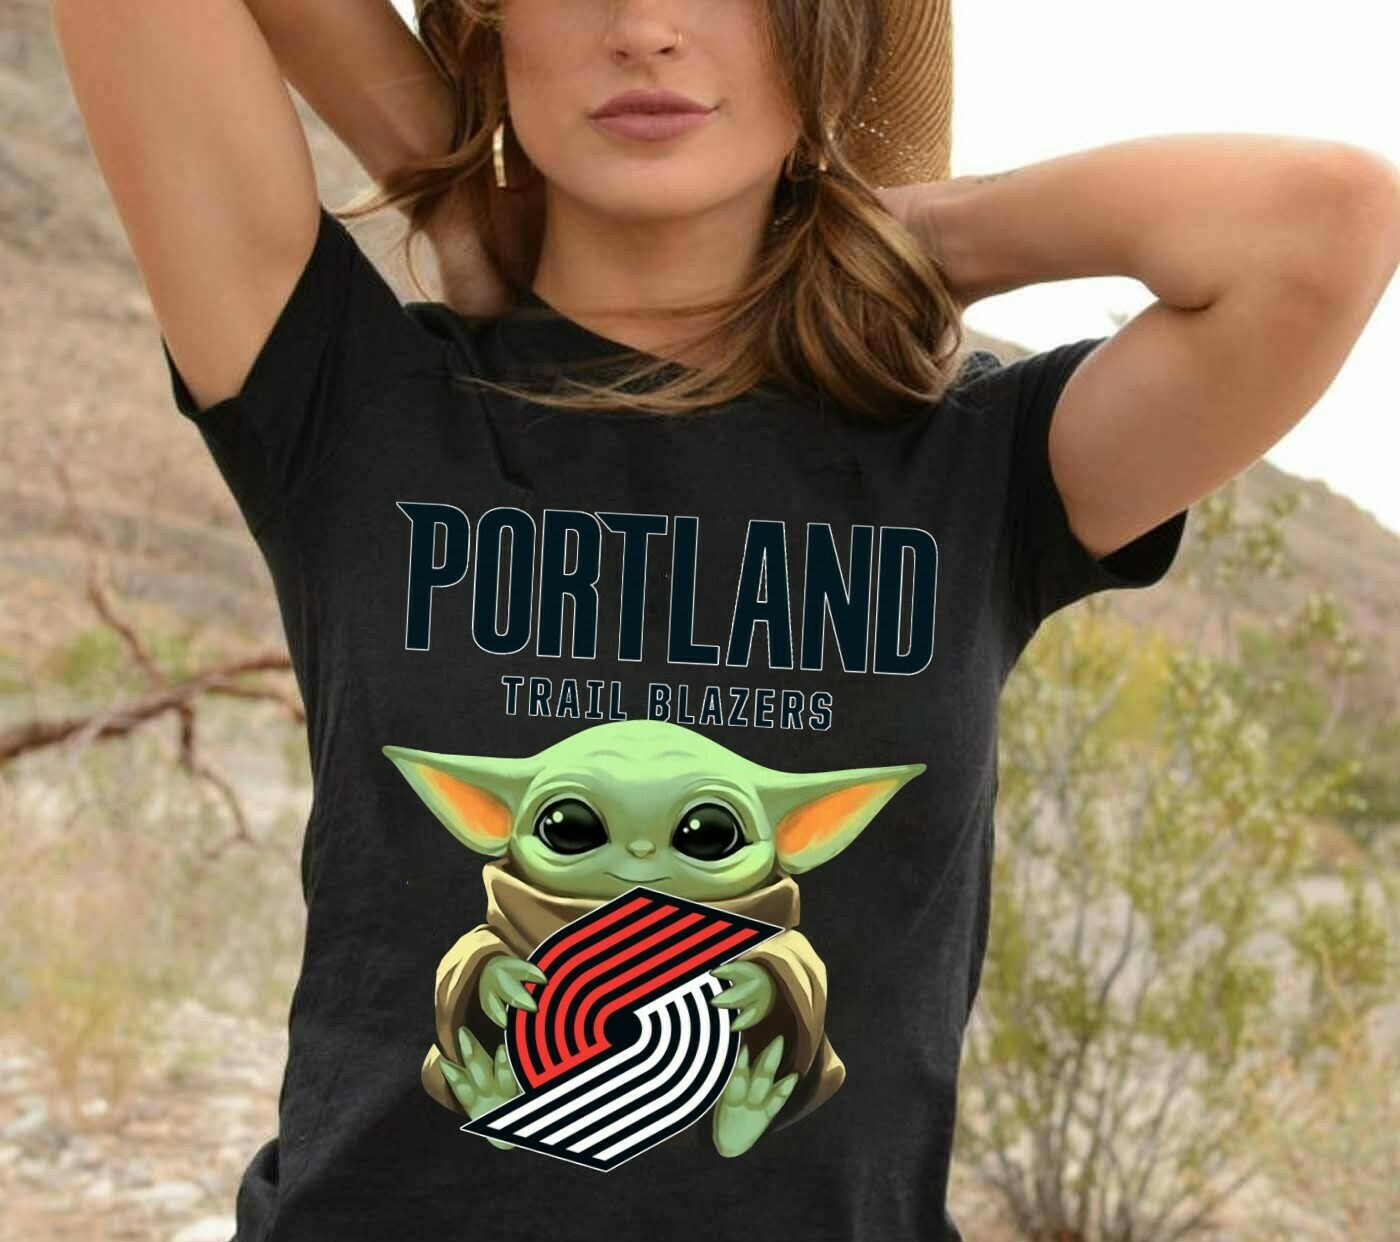 Portland Trail Blazers Baby Yoda Star Wars The Mandalorian The Child First Memories Floating NBA Basketball Dad Mon Kid Fan Gift T-Shirt Long Sleeve Sweatshirt Hoodie Jolly Family Gifts